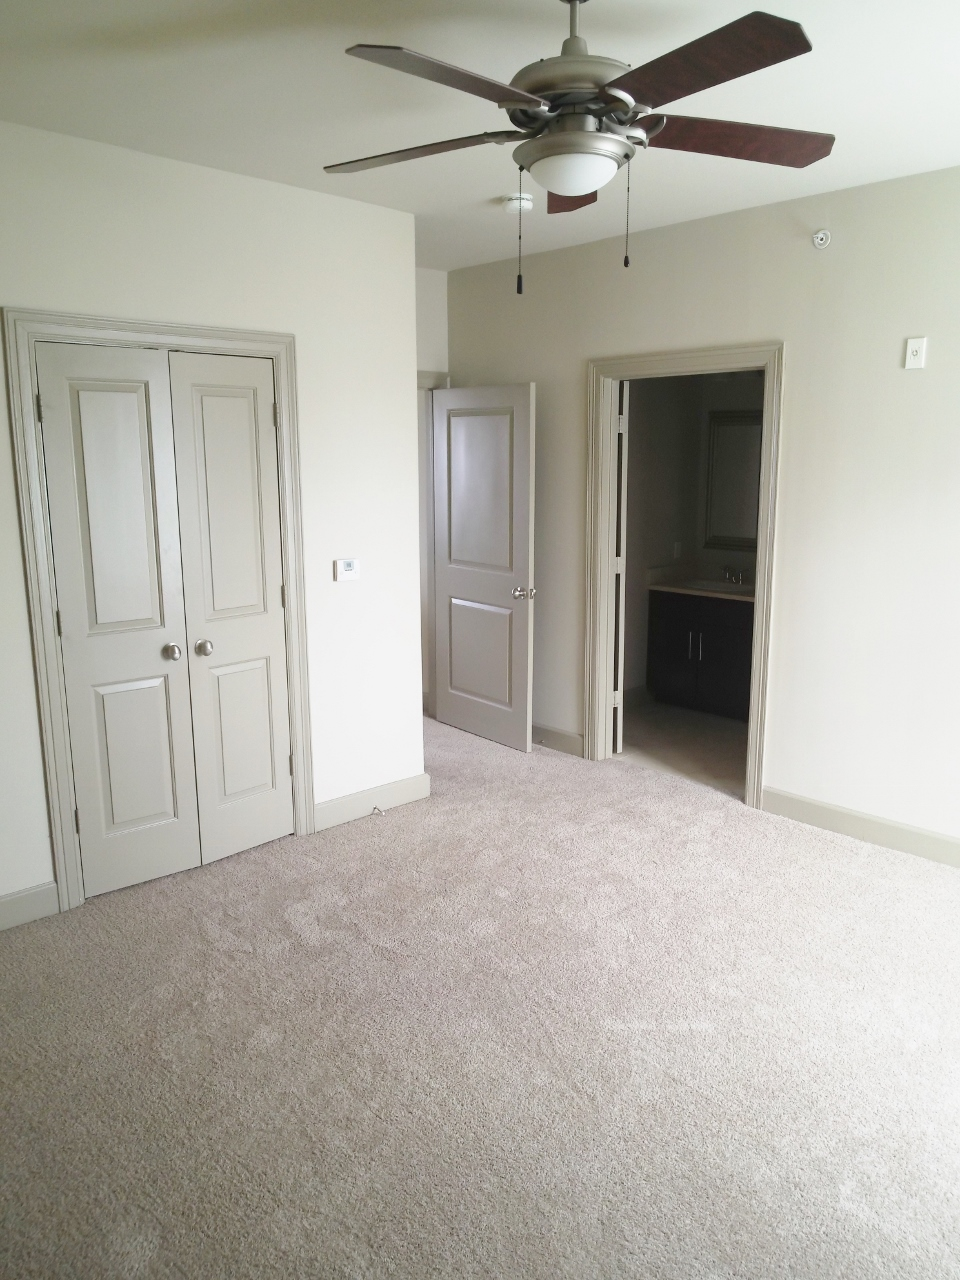 2 Beds, 2 Baths apartment in Braintree for $3,546